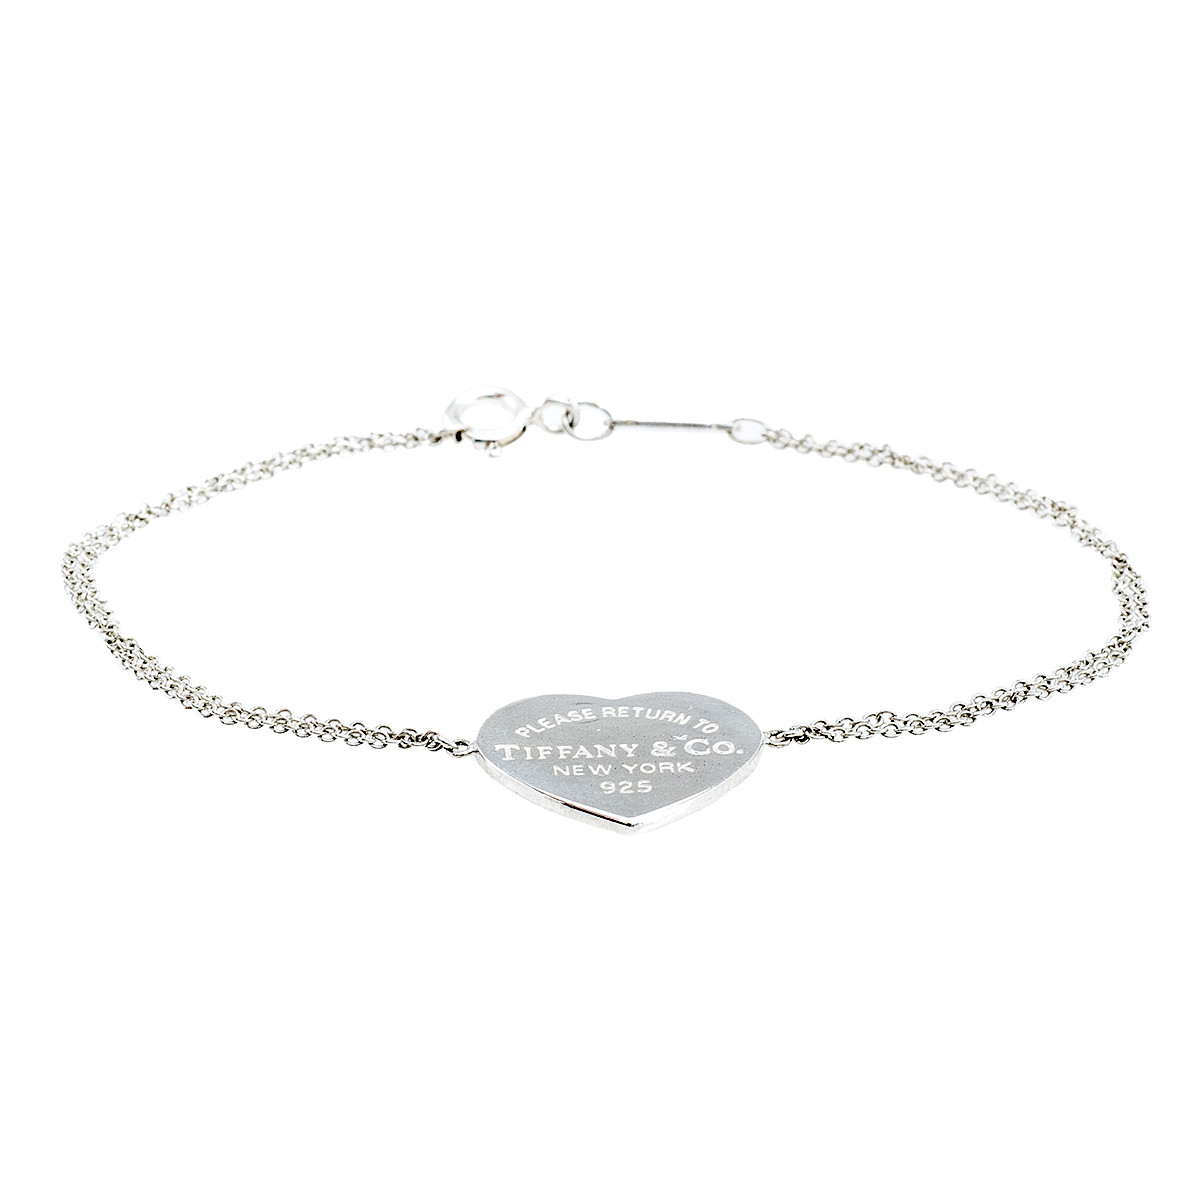 Vintage Tiffany & Co. Please Return To Tiffany Heart Bracelet